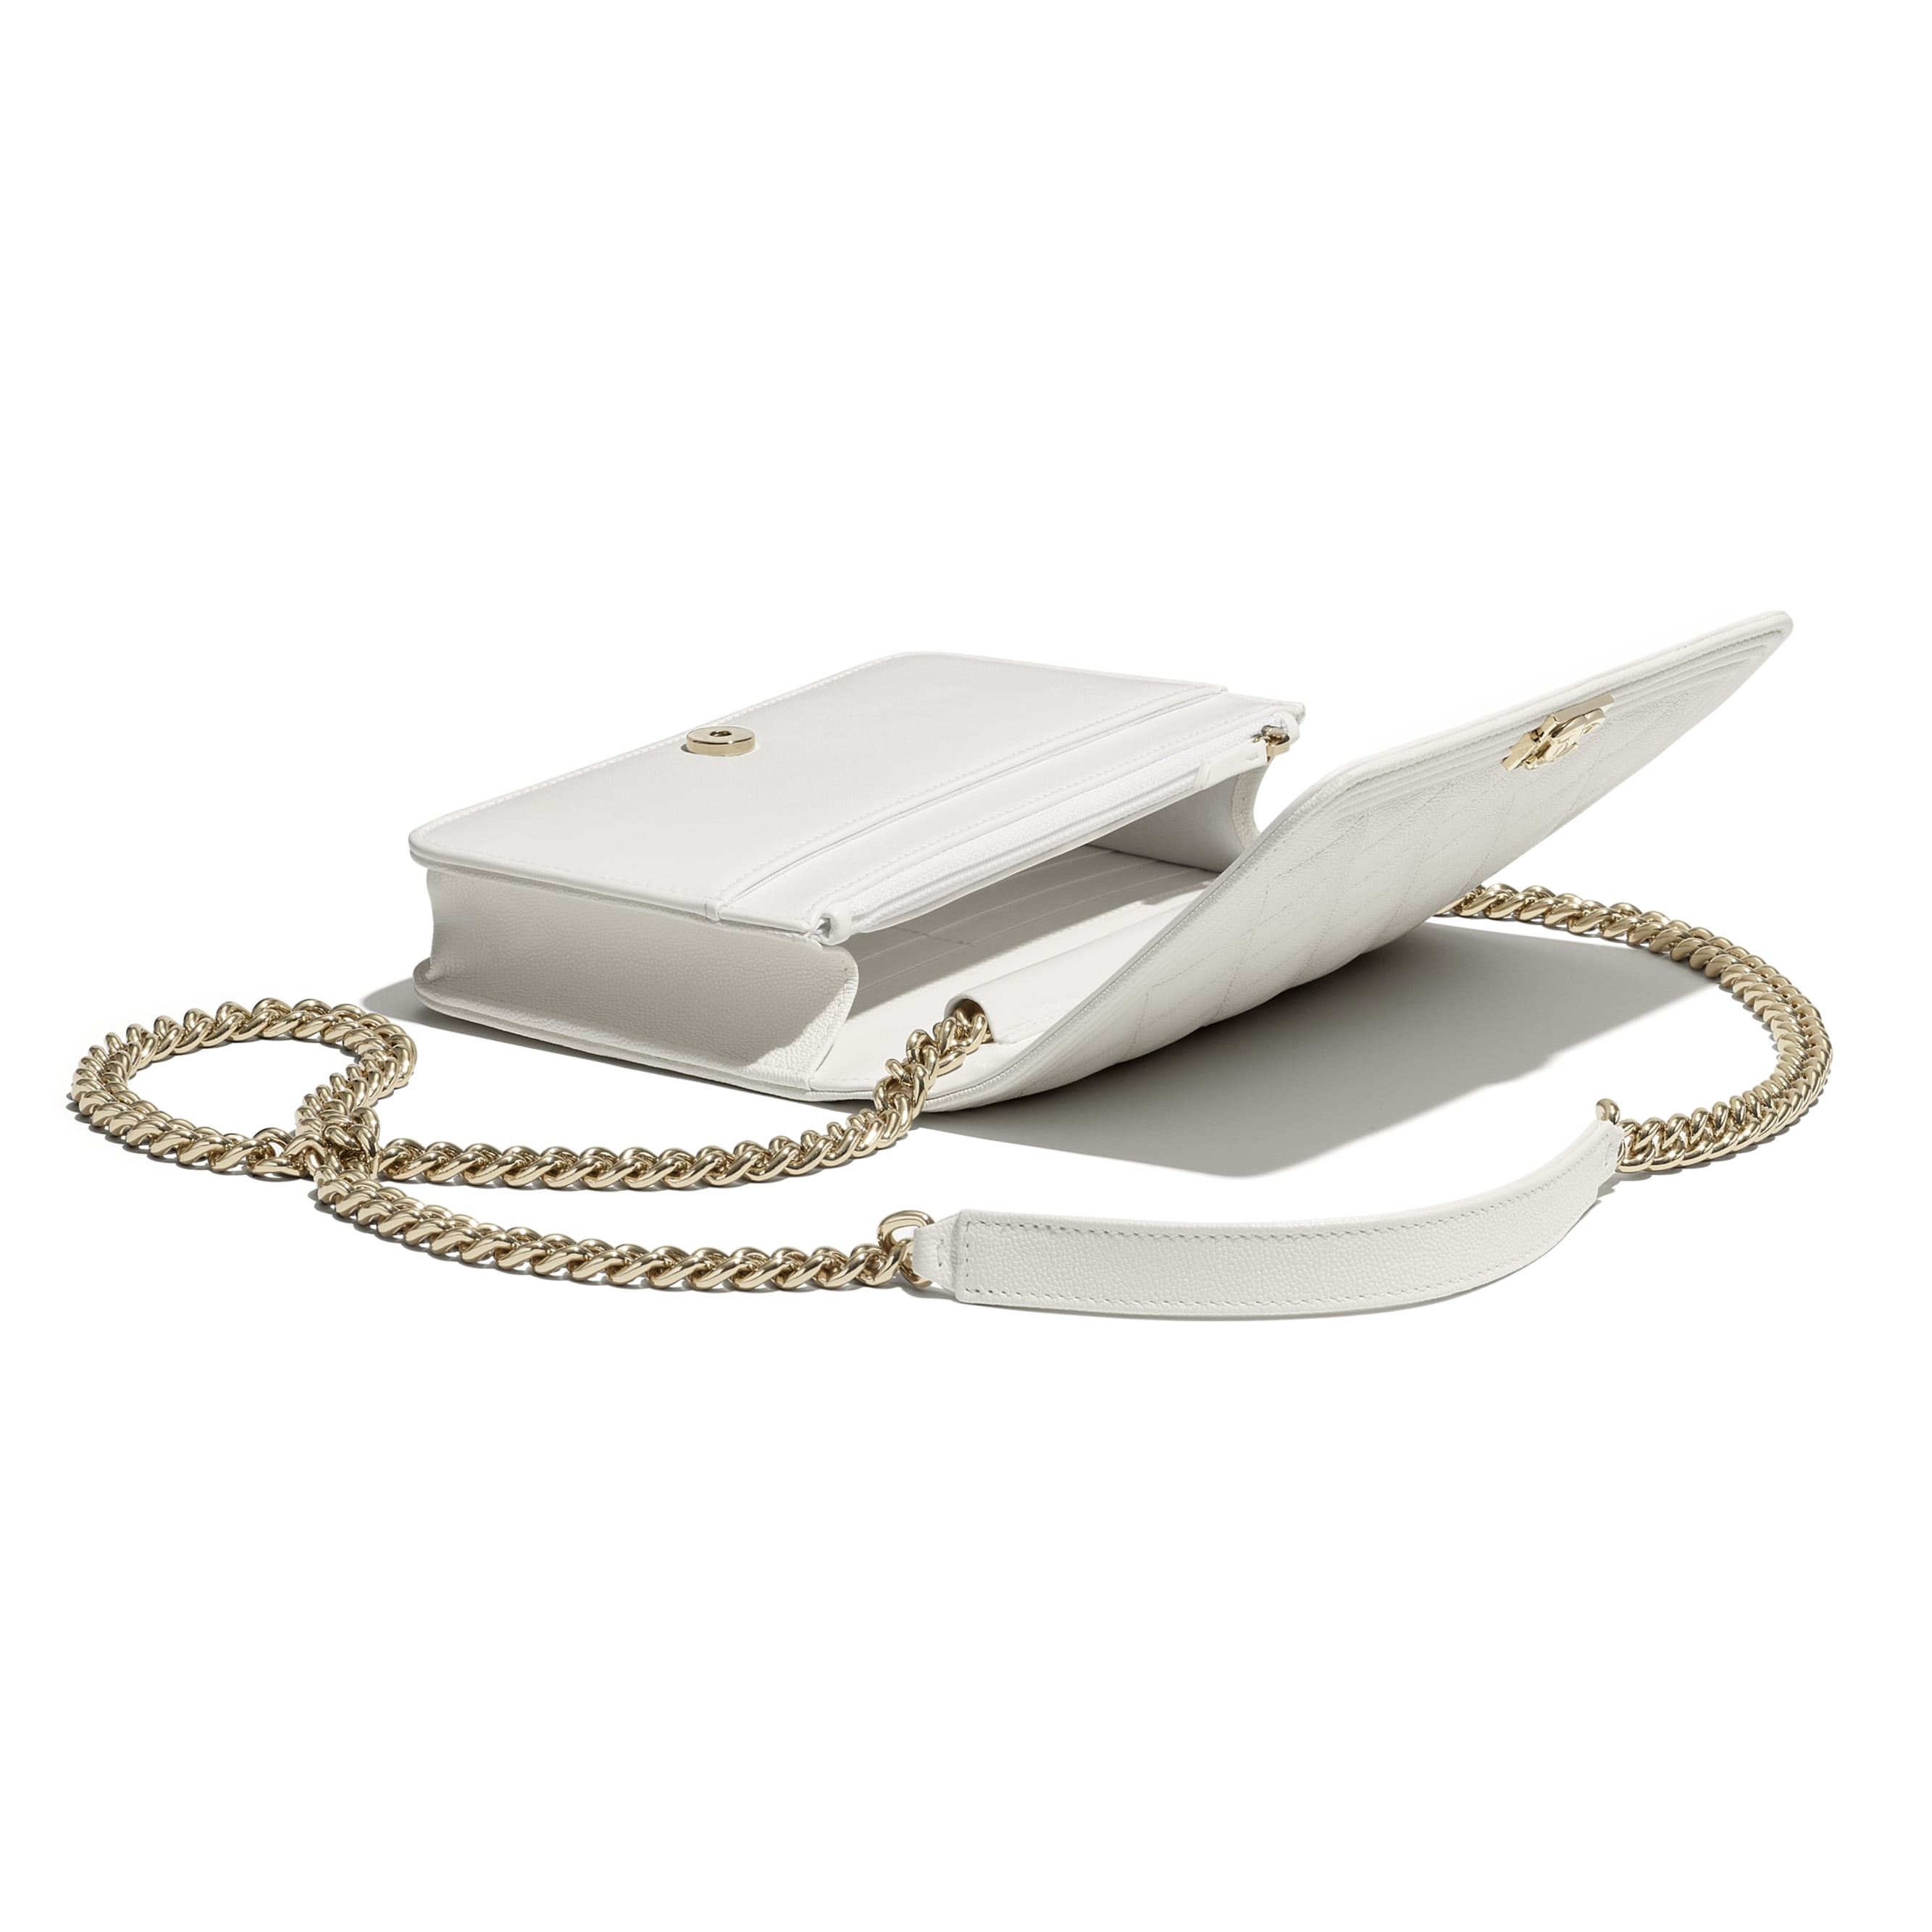 BOY CHANEL Wallet On Chain - White - Grained Calfskin & Gold-Tone Metal - CHANEL - Other view - see standard sized version